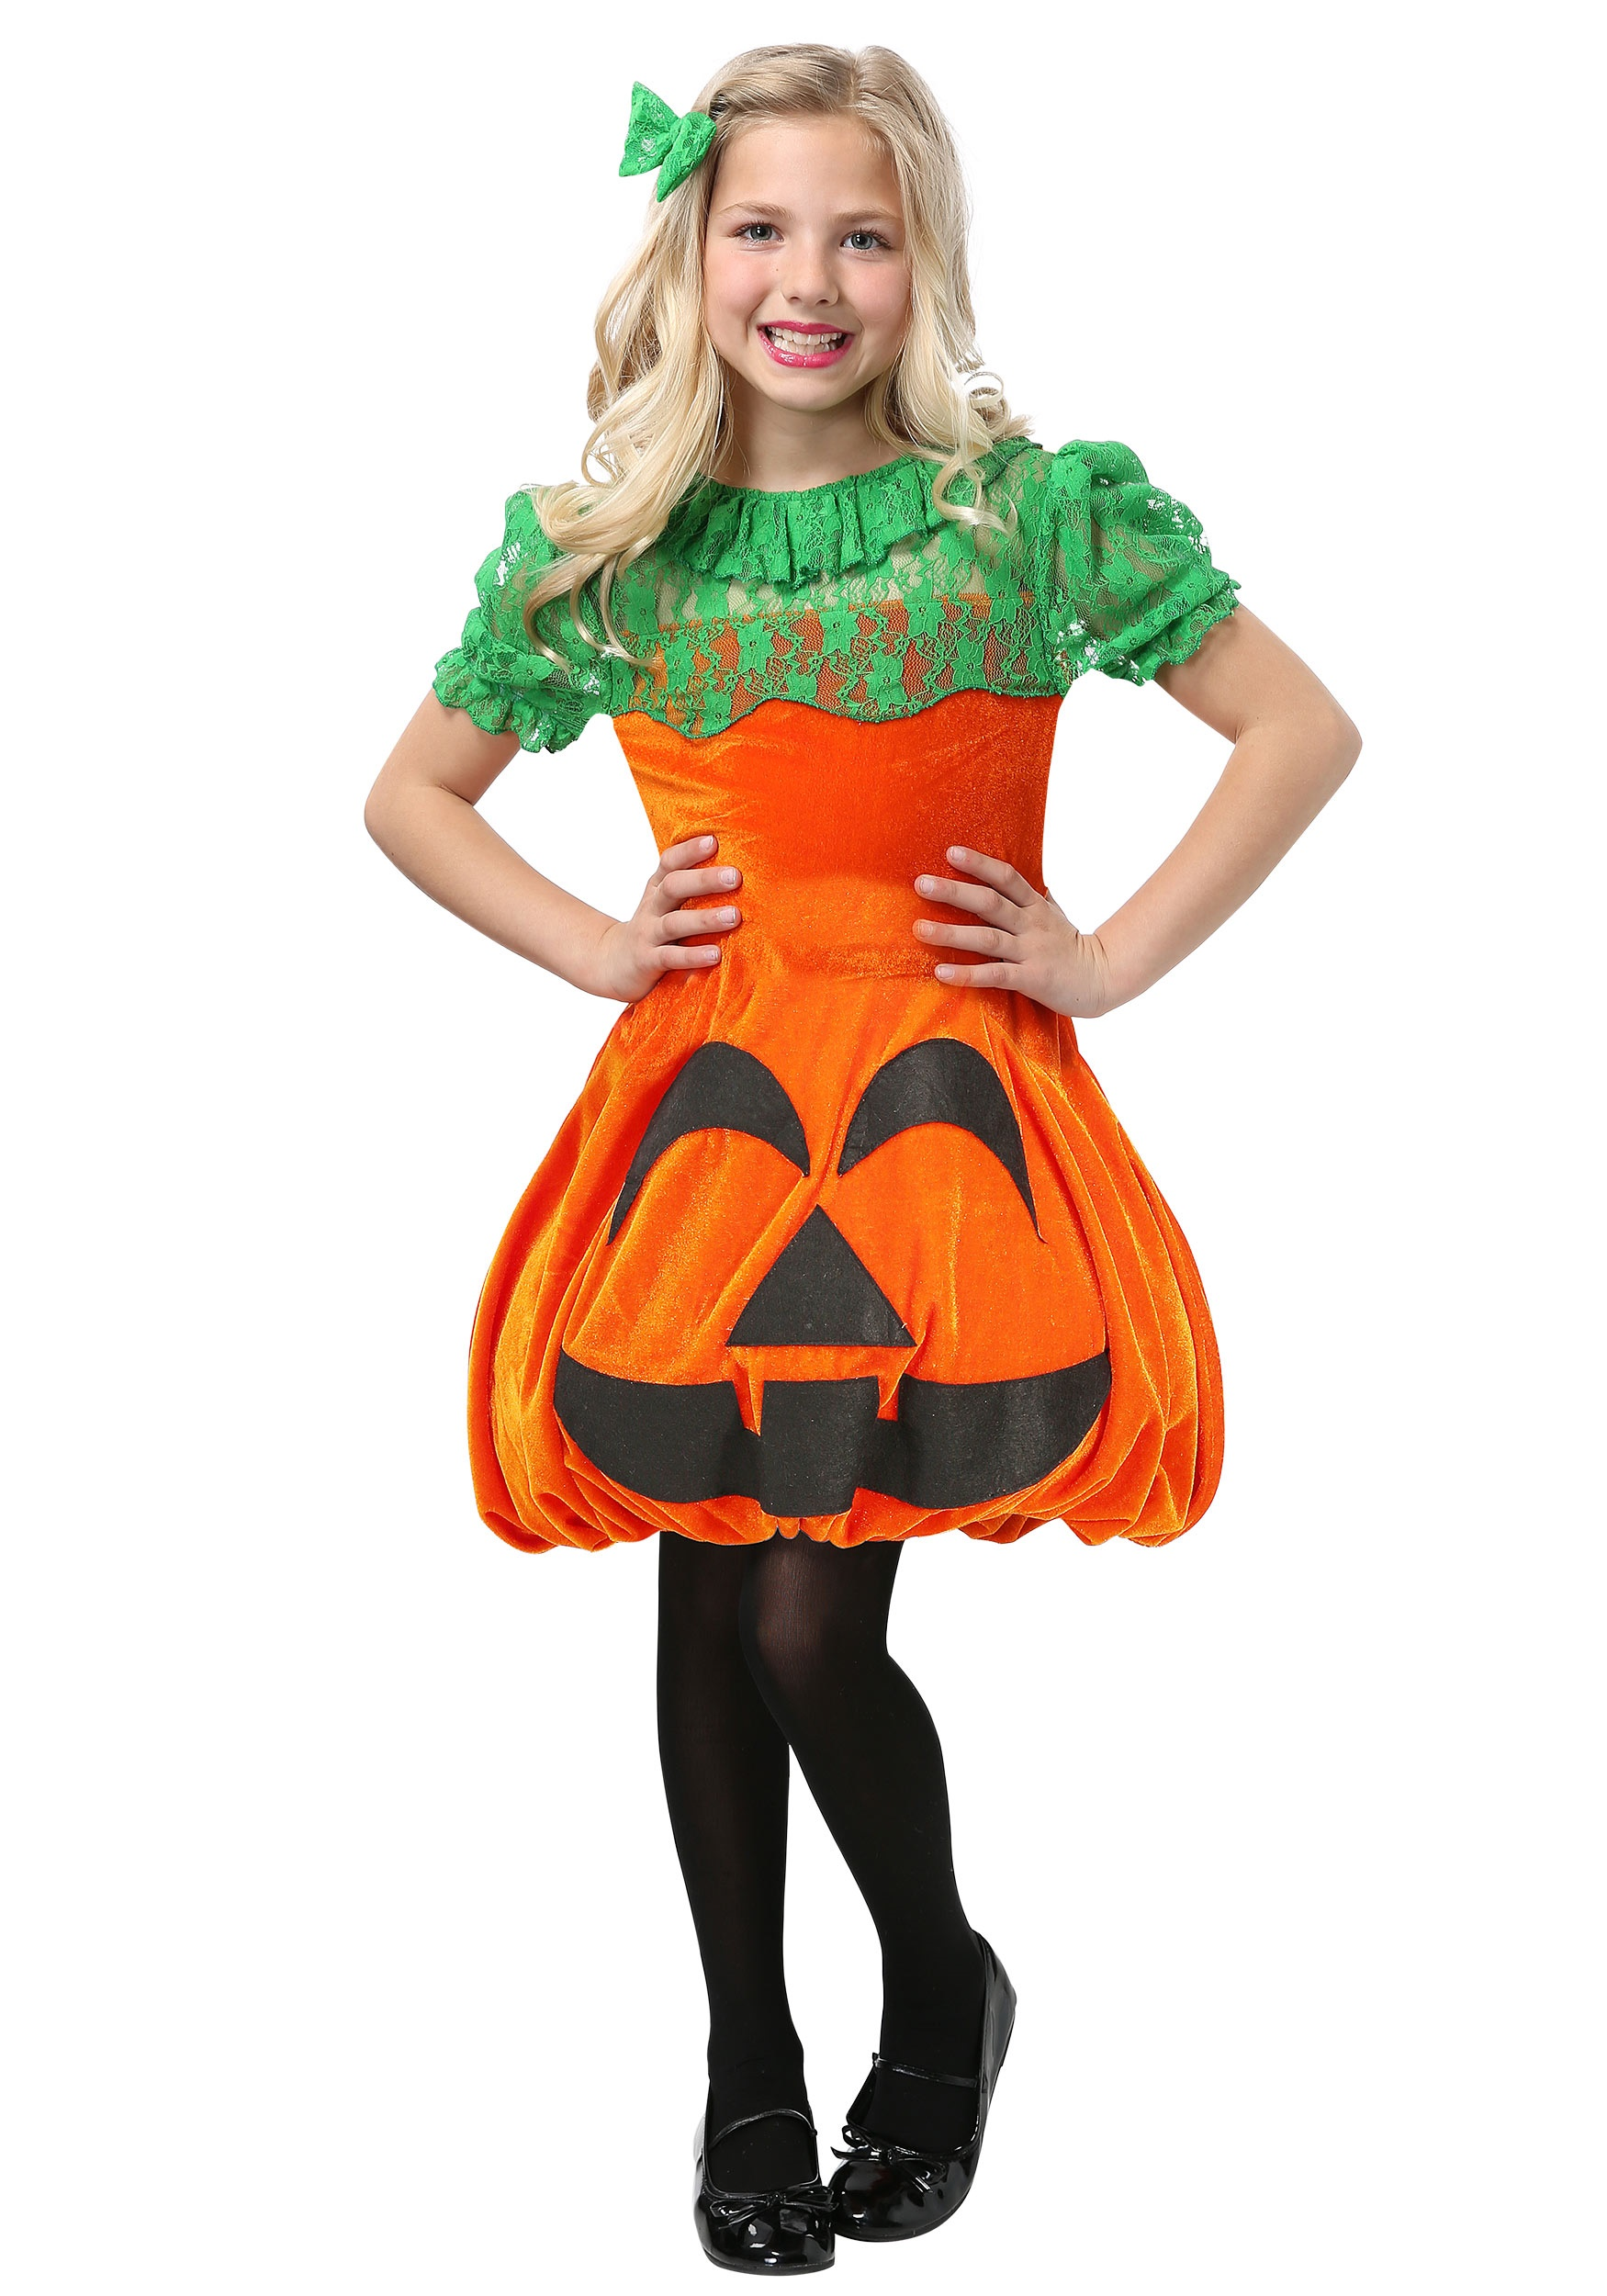 Pretty Pumpkin Girls Costume  sc 1 st  Halloween Costumes & Food Costumes - Adult Kids Food and Drink Halloween Costume Ideas